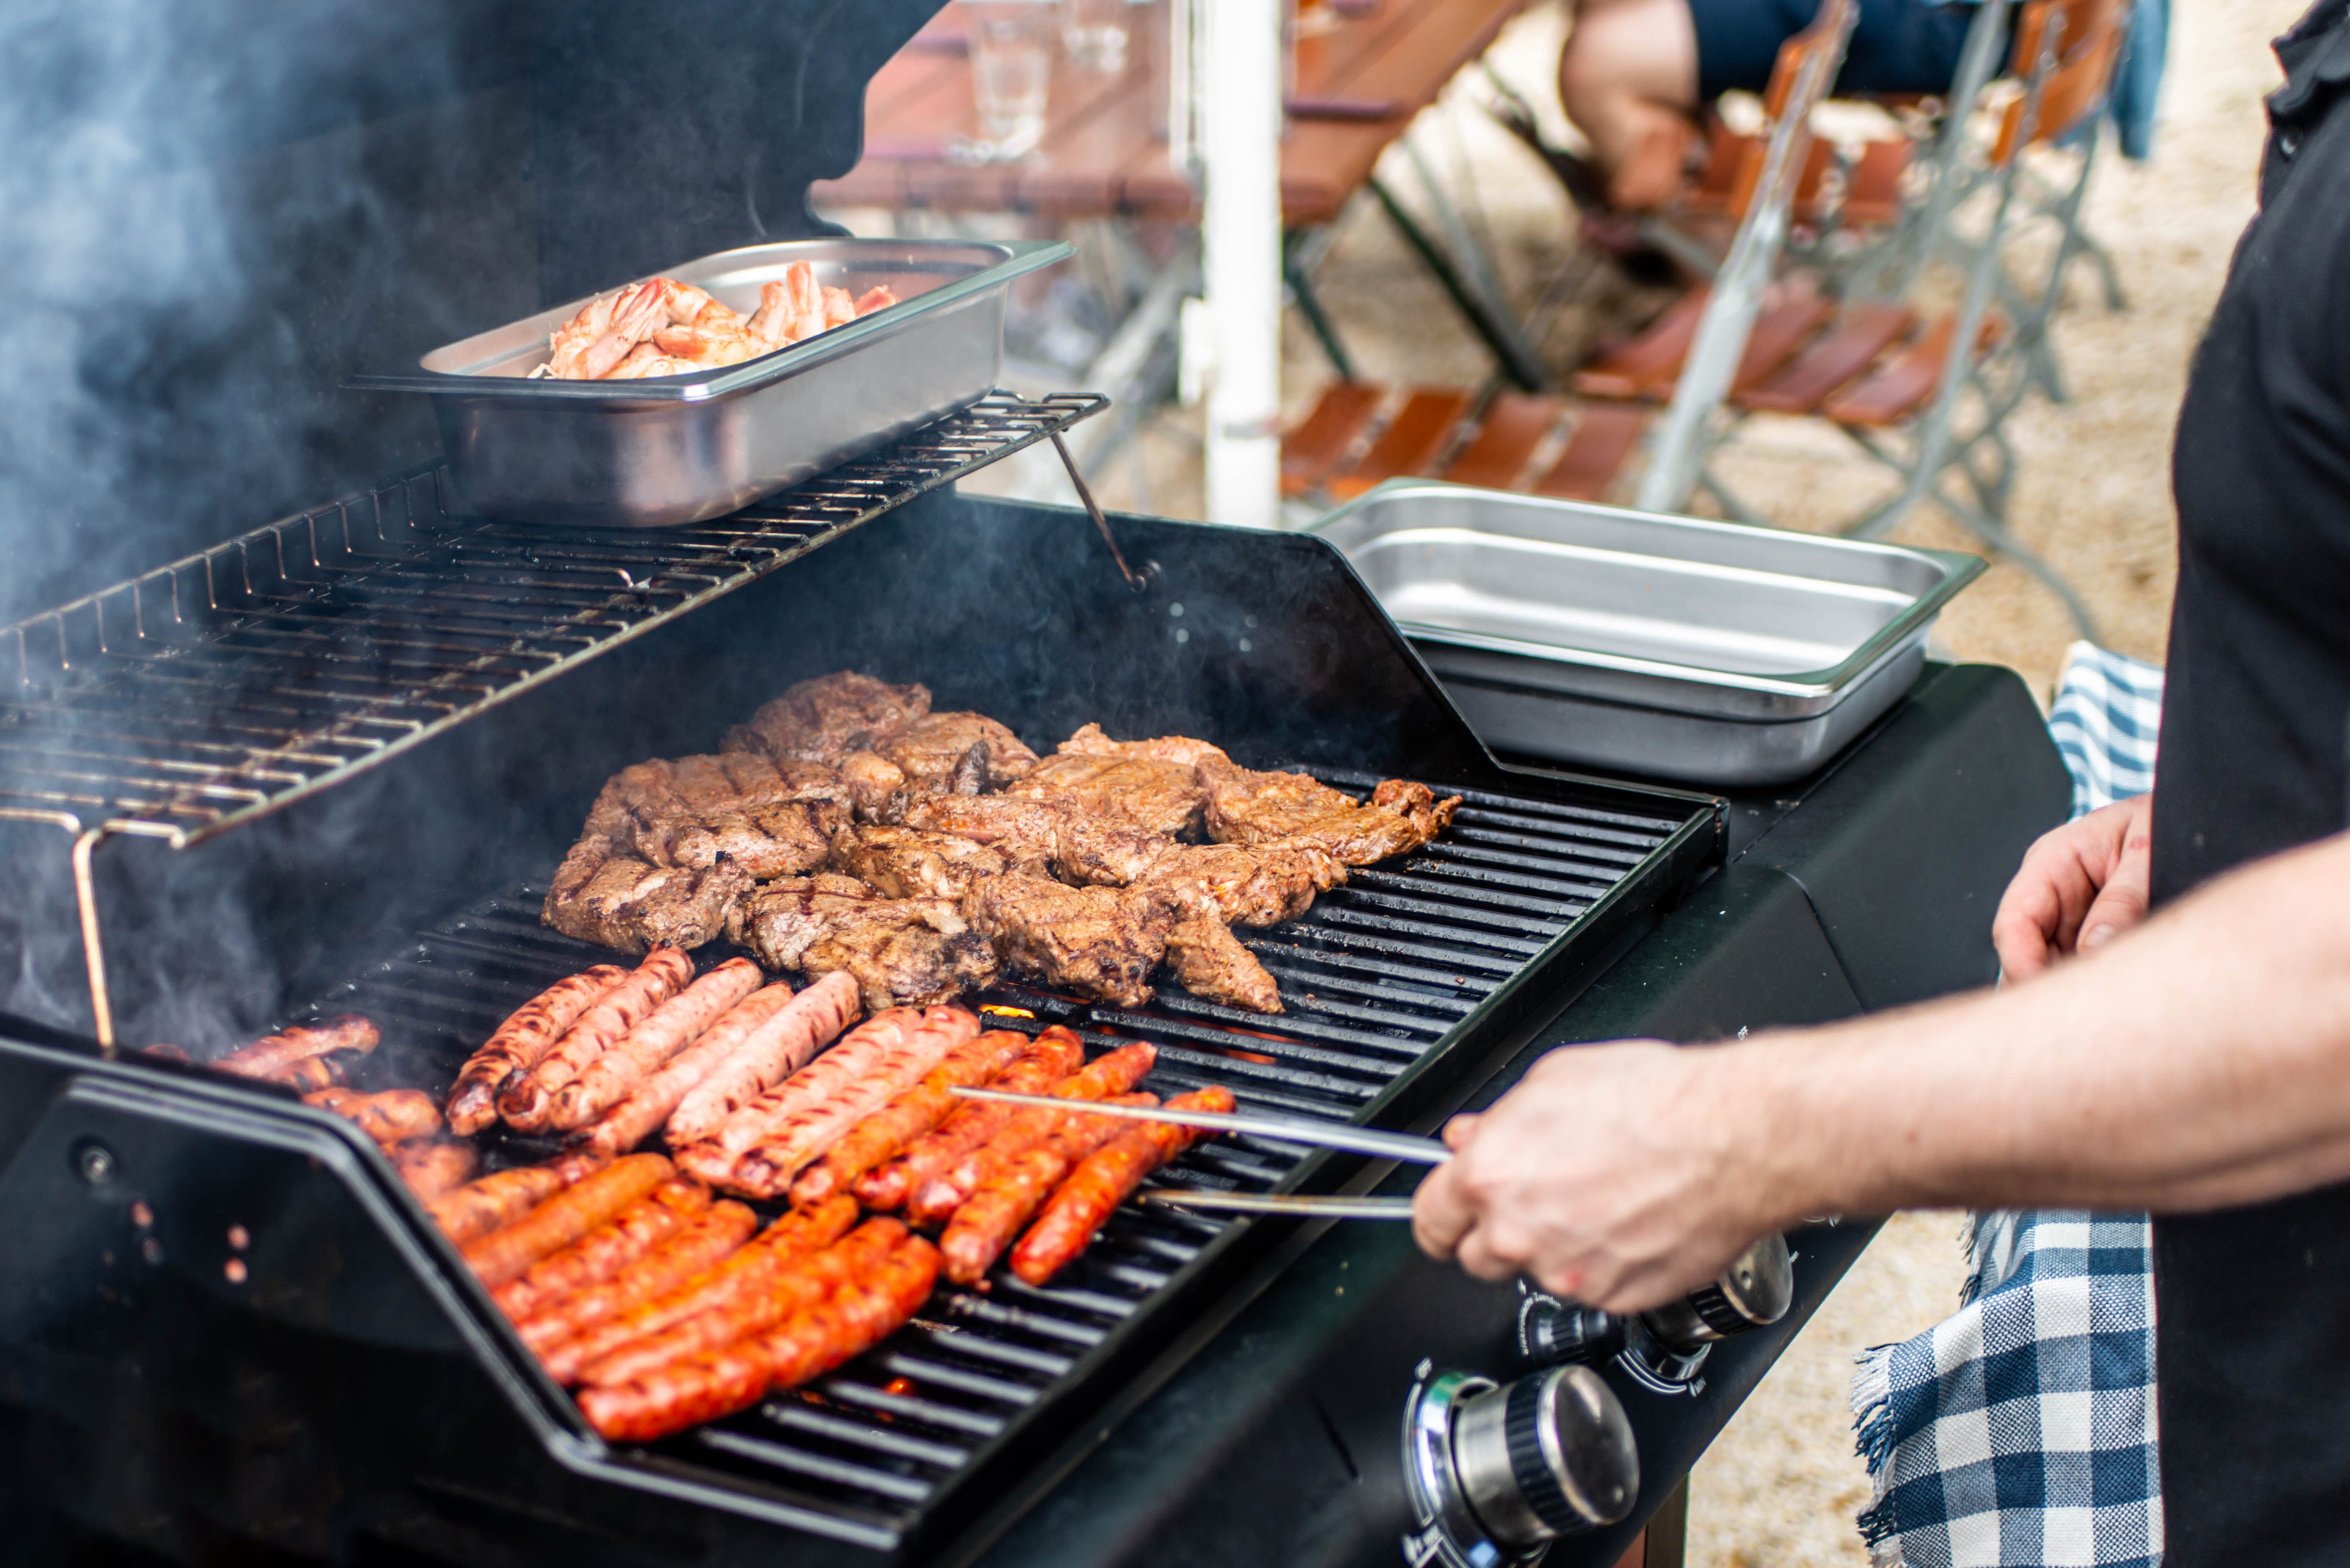 Ground beef and pork should be cooked to an internal temperature of at least160°Fwhile steaks and roasts should be cooked to at least 145°Fand allow to rest for three minutes after removal from the grill.